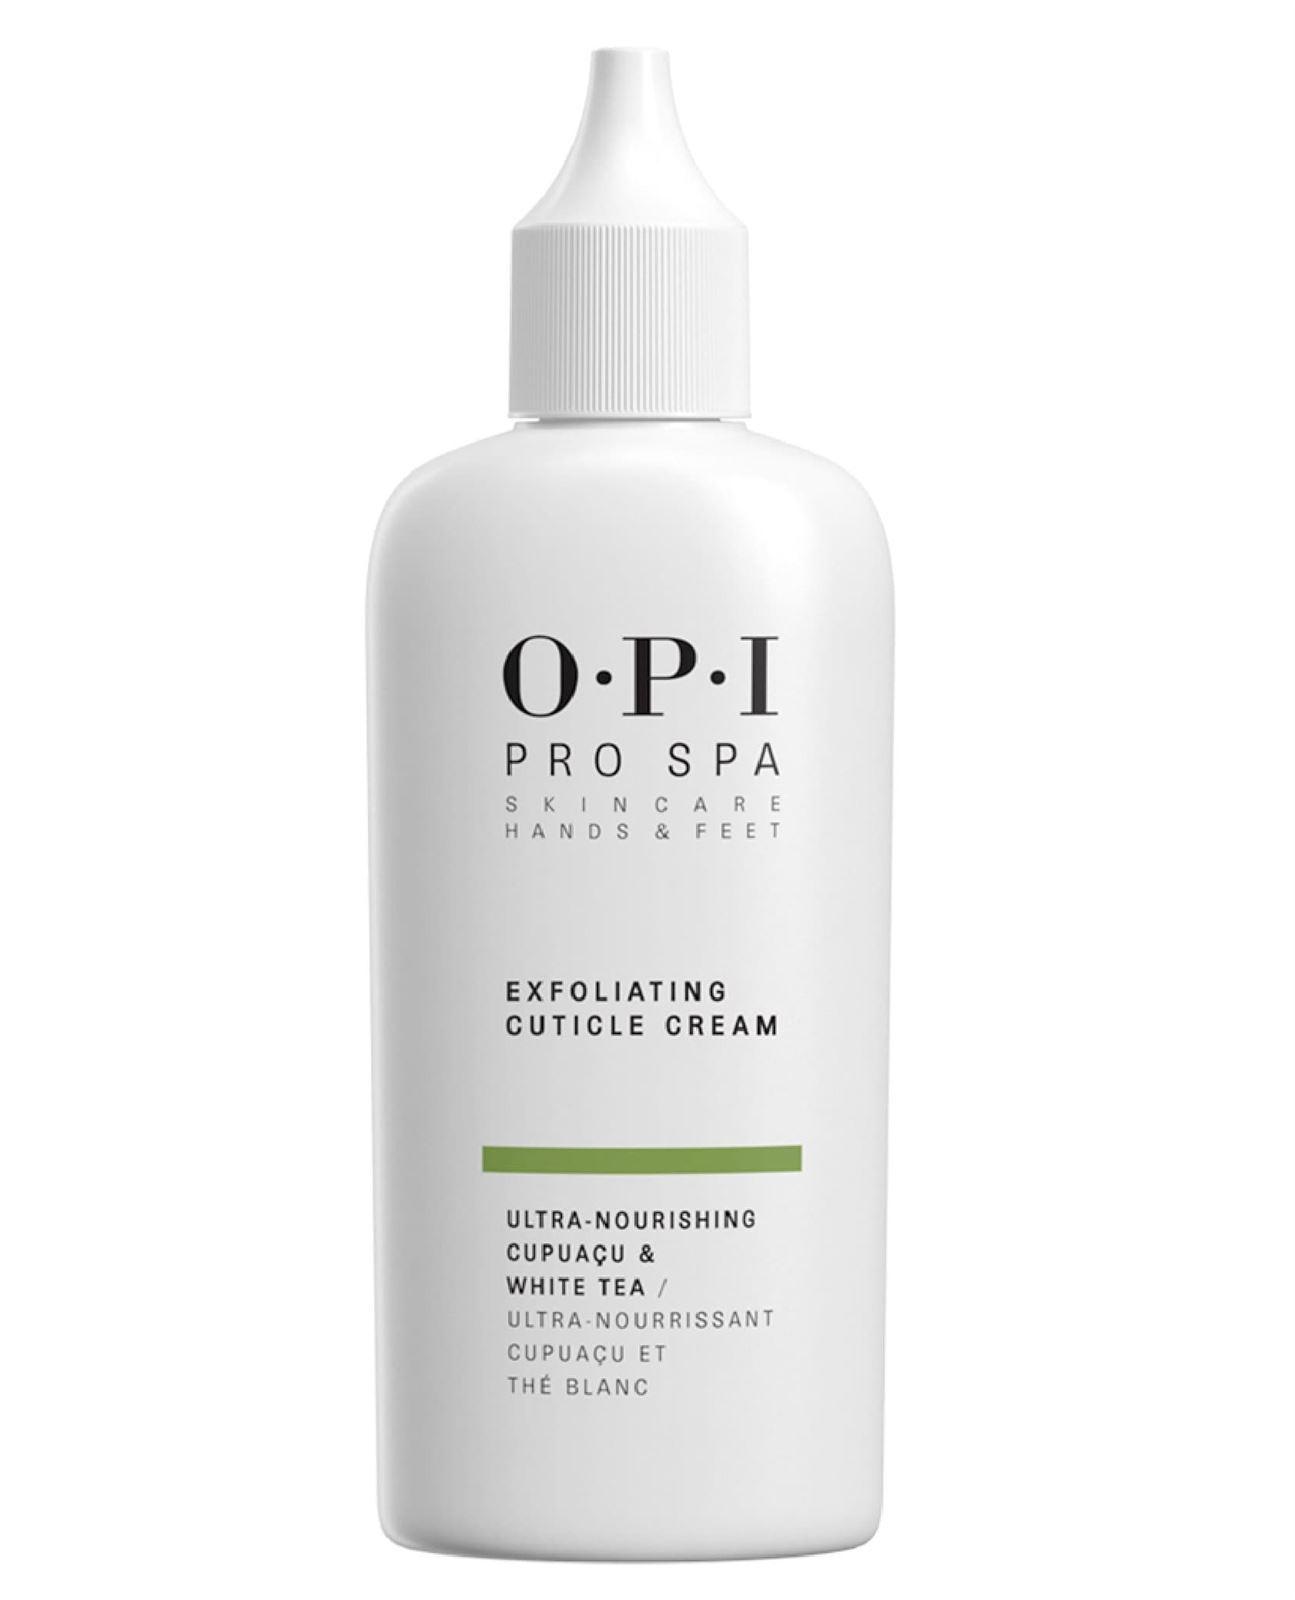 OPI PRO SPA EXFOLIATING CUTICLE - Imagen 1